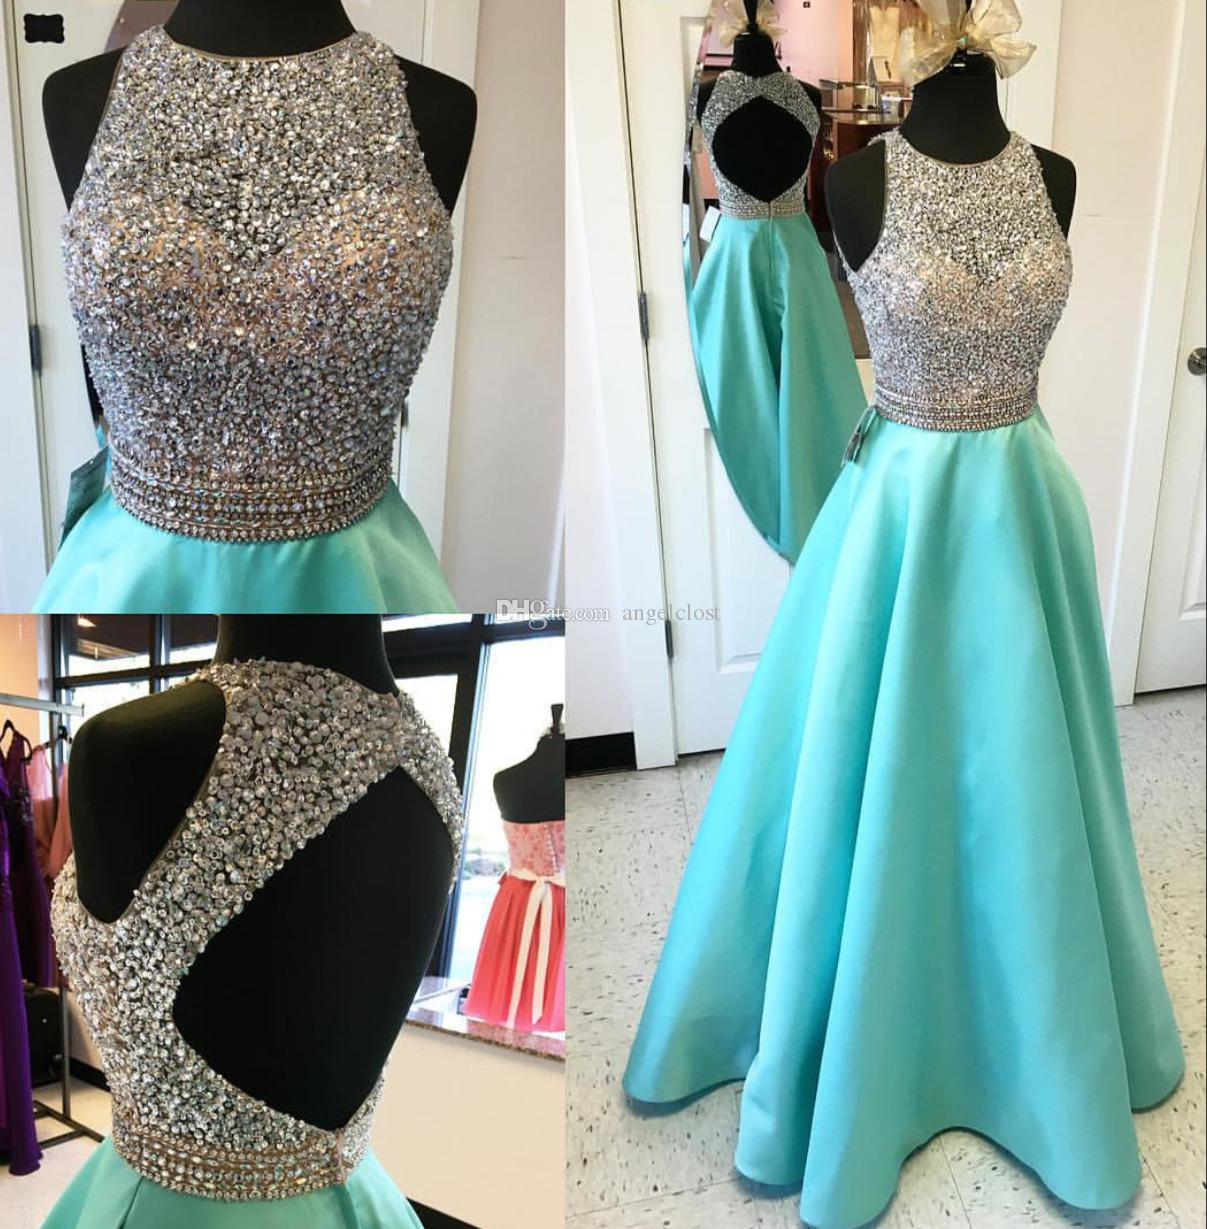 d20585857d2 2019 Major Beading Backless Plain Sexy Prom Dresses Jewel Sleeveless A Line  Satin Floor Length Evening Dresses Party Gowns Customized Prom Dresses  Online ...